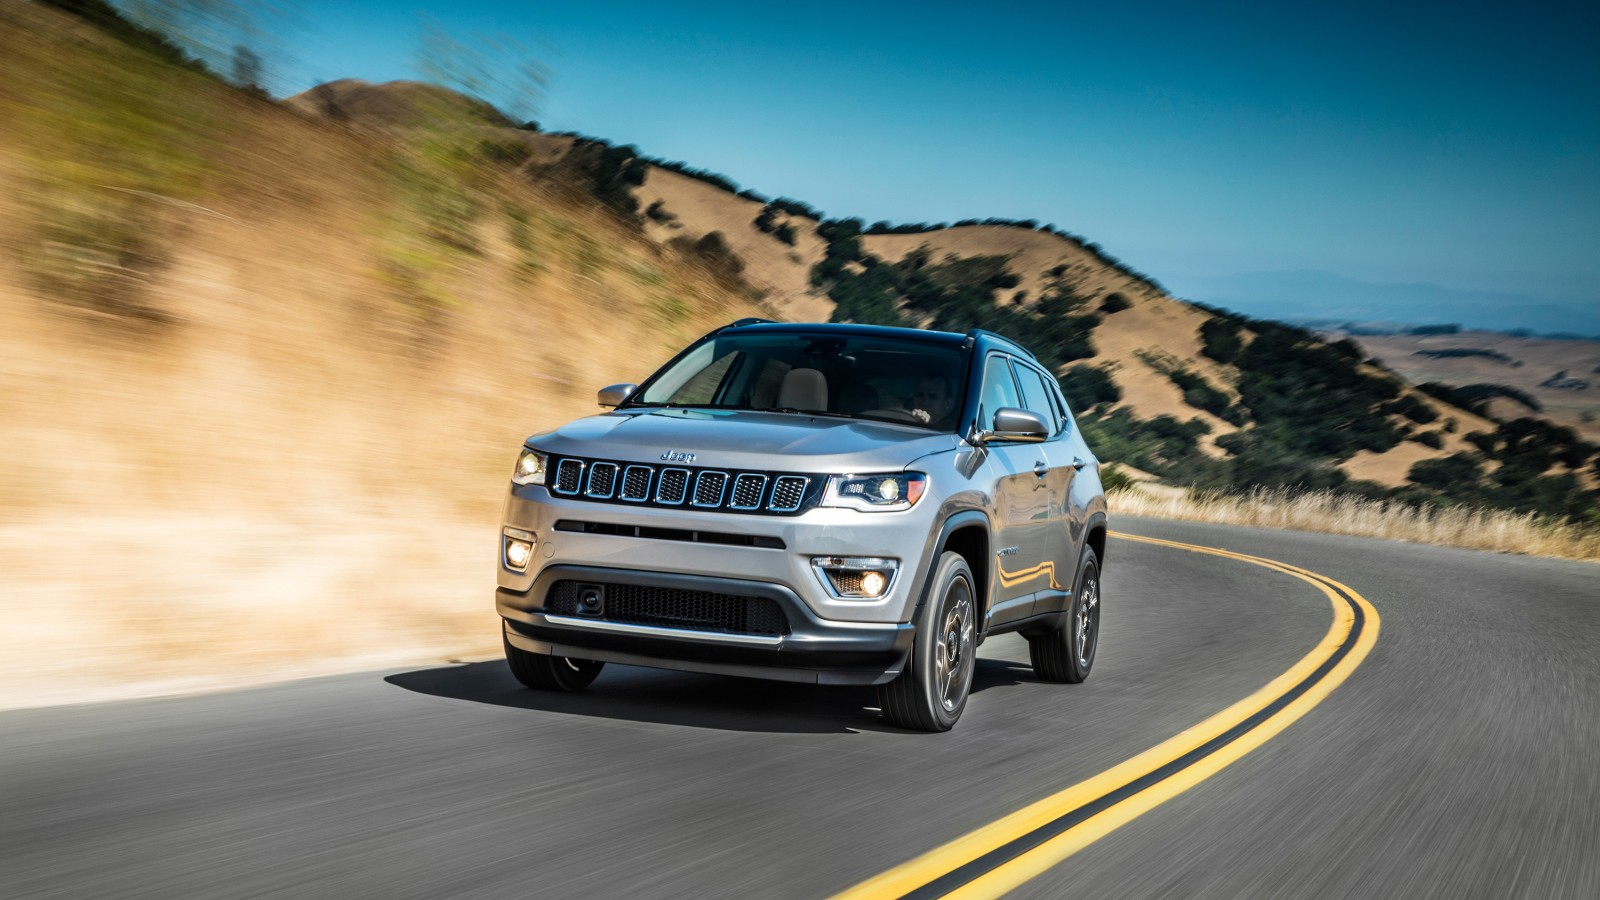 2017 jeep compass limited wallpaper hd car wallpapers id 7454. Black Bedroom Furniture Sets. Home Design Ideas